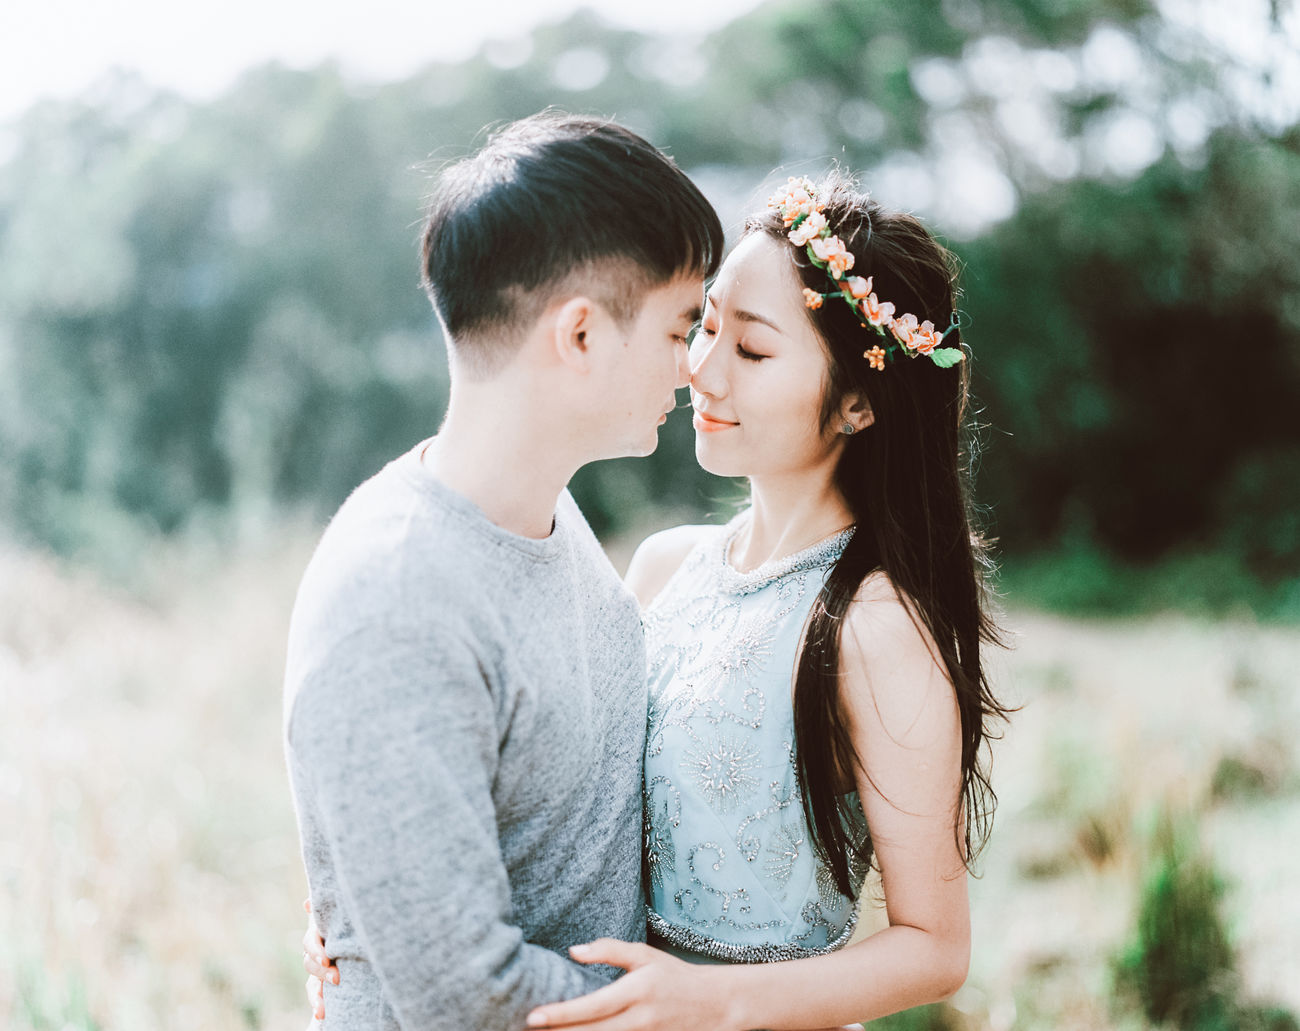 Adult Bonding Bride Casual Clothing Childhood Day Focus On Foreground Happiness Leisure Activity Lifestyles Love Outdoors People Real People Standing The Portraitist - 2017 EyeEm Awards Togetherness Two People Waist Up Wedding Dress Young Adult Young Women